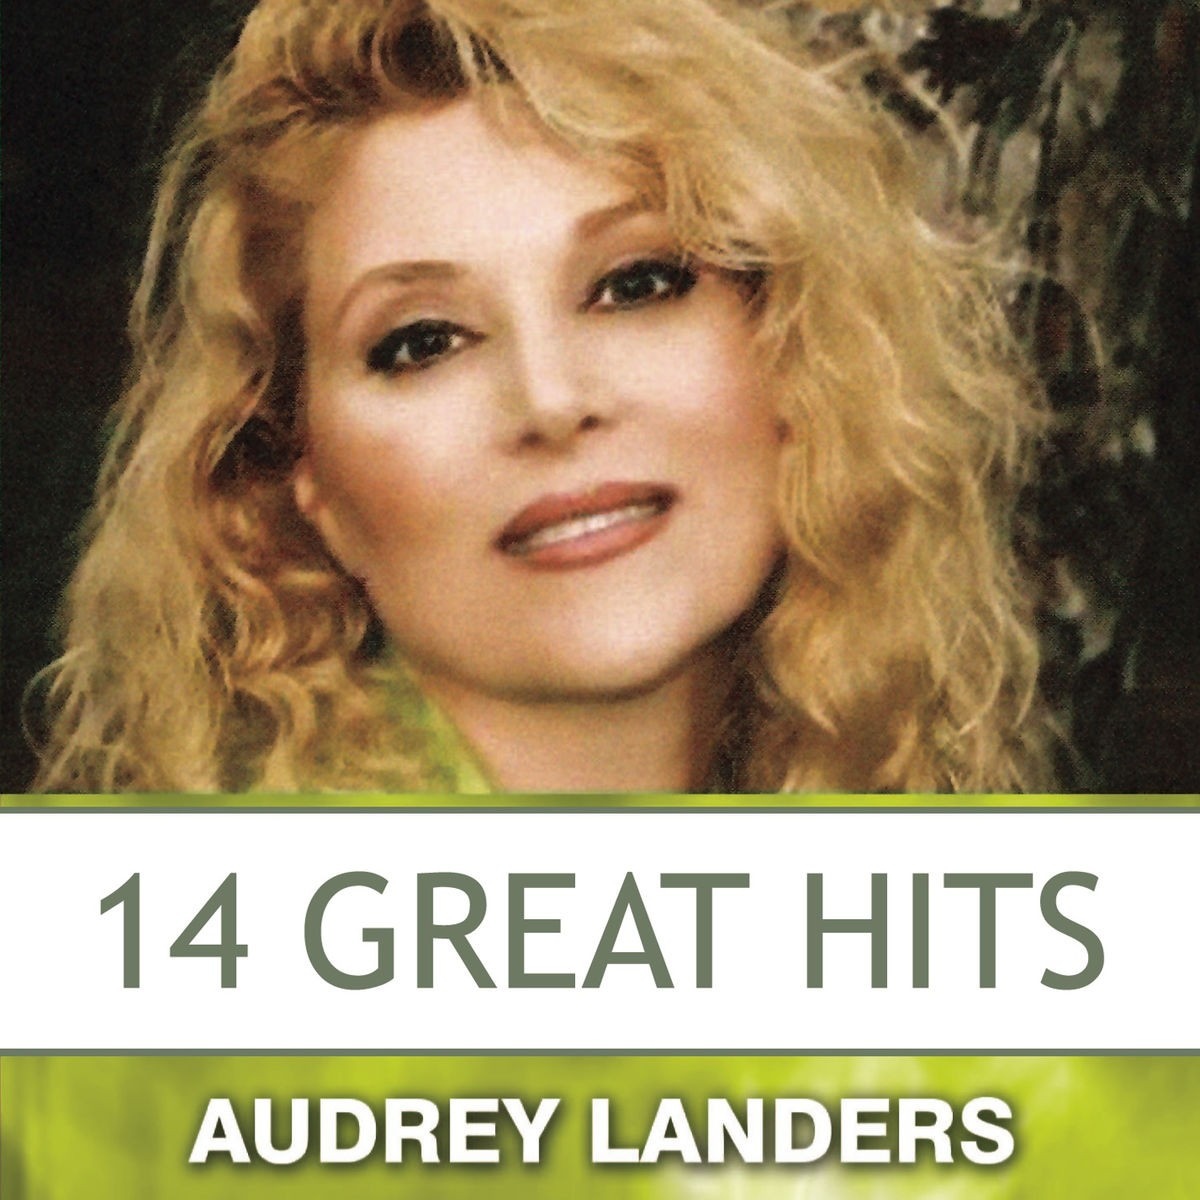 Audrey Landers - 14 Great Hits CD - CDSM560